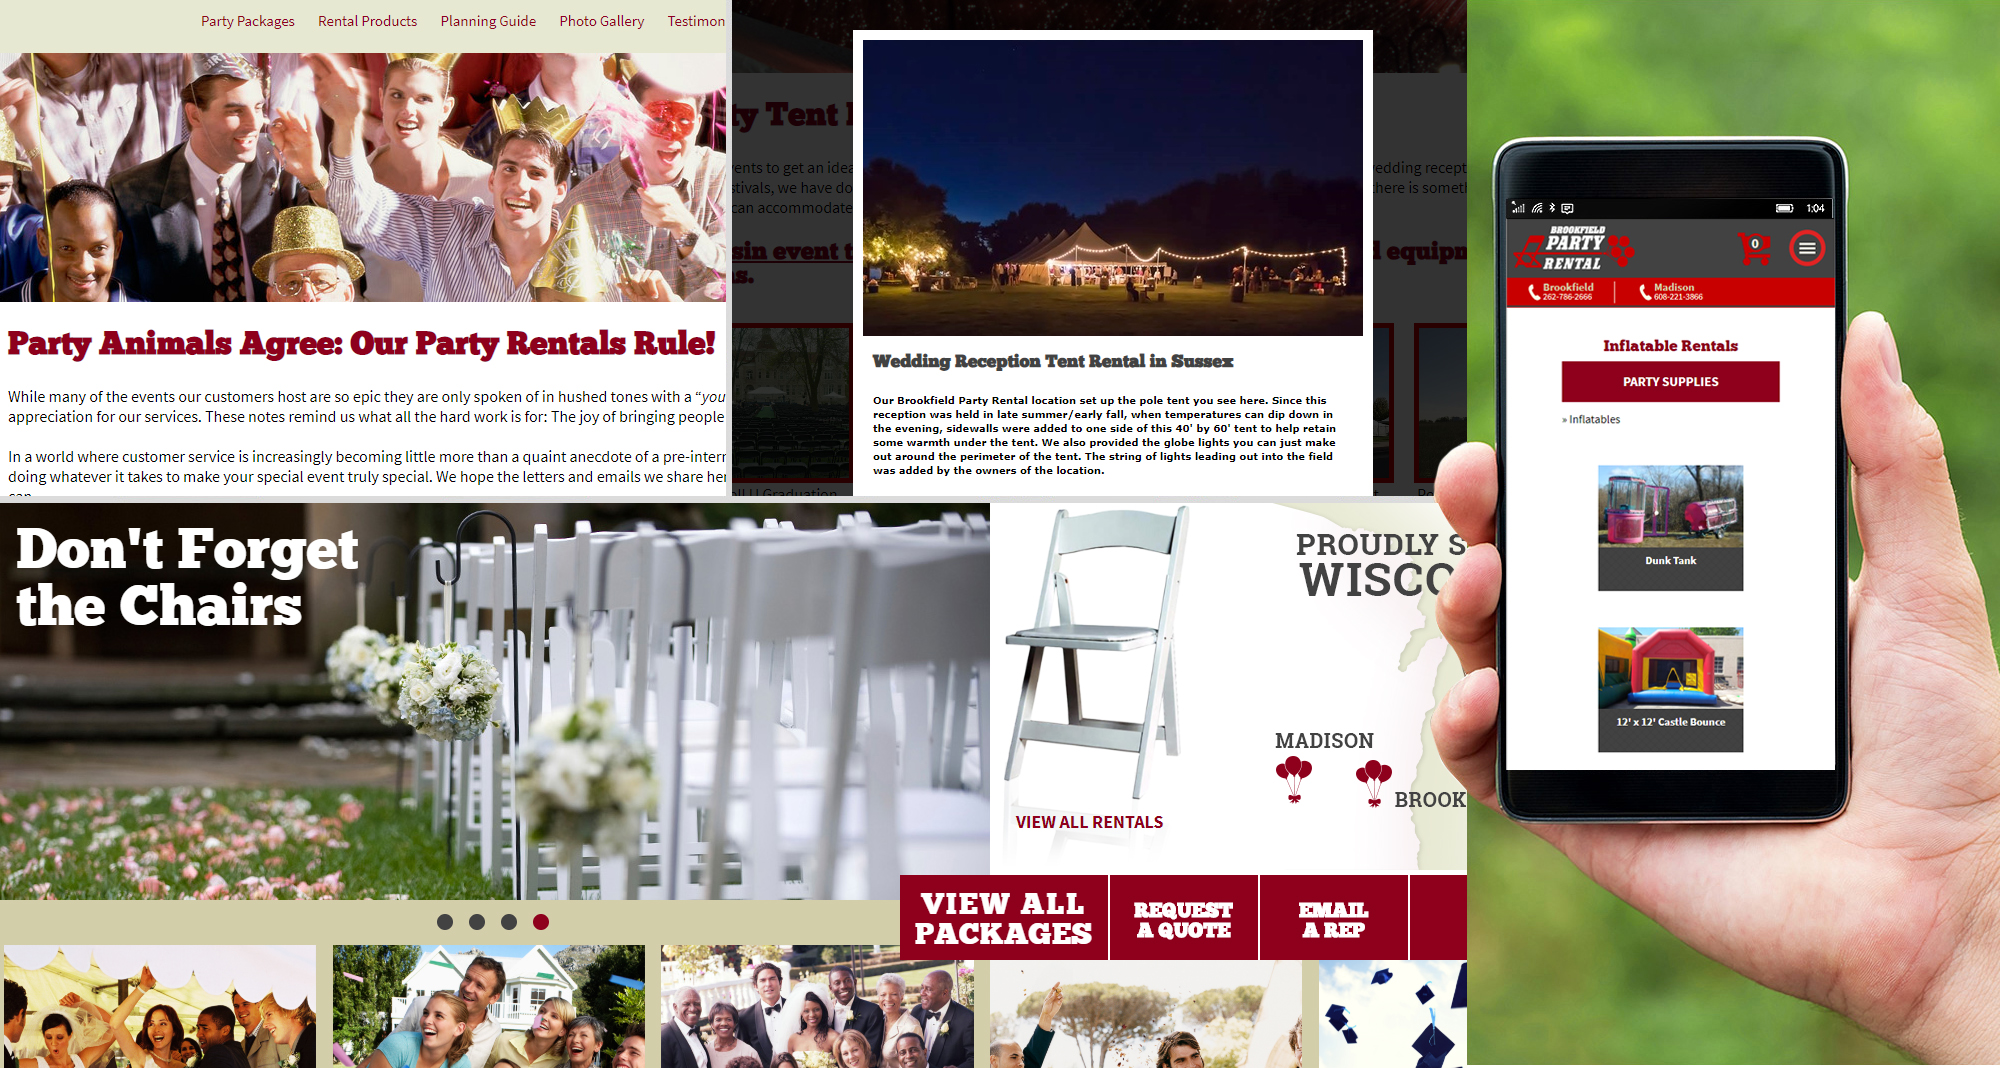 Milwaukee web marketing for Brookfield Party Rental / Madison Party Rental